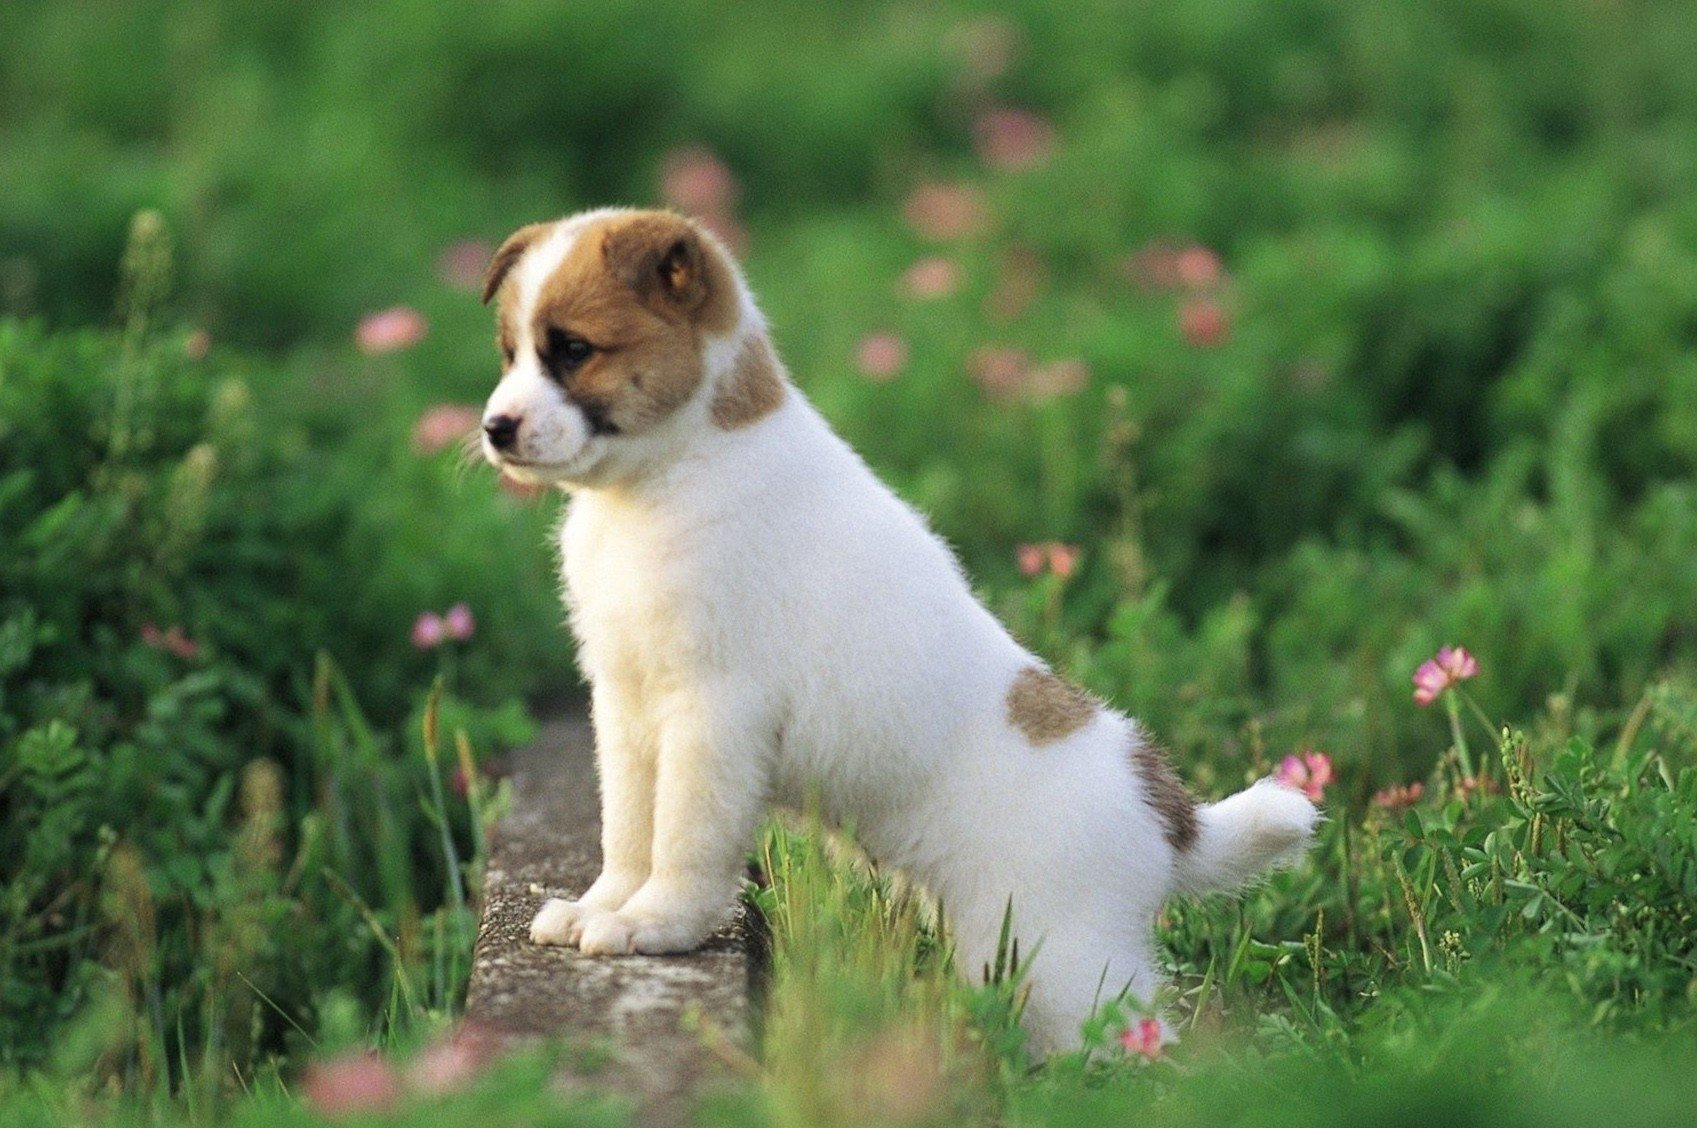 Dog Wallpaper Claws Cute Dog Images HD Wallpapers Desktop 1697x1128